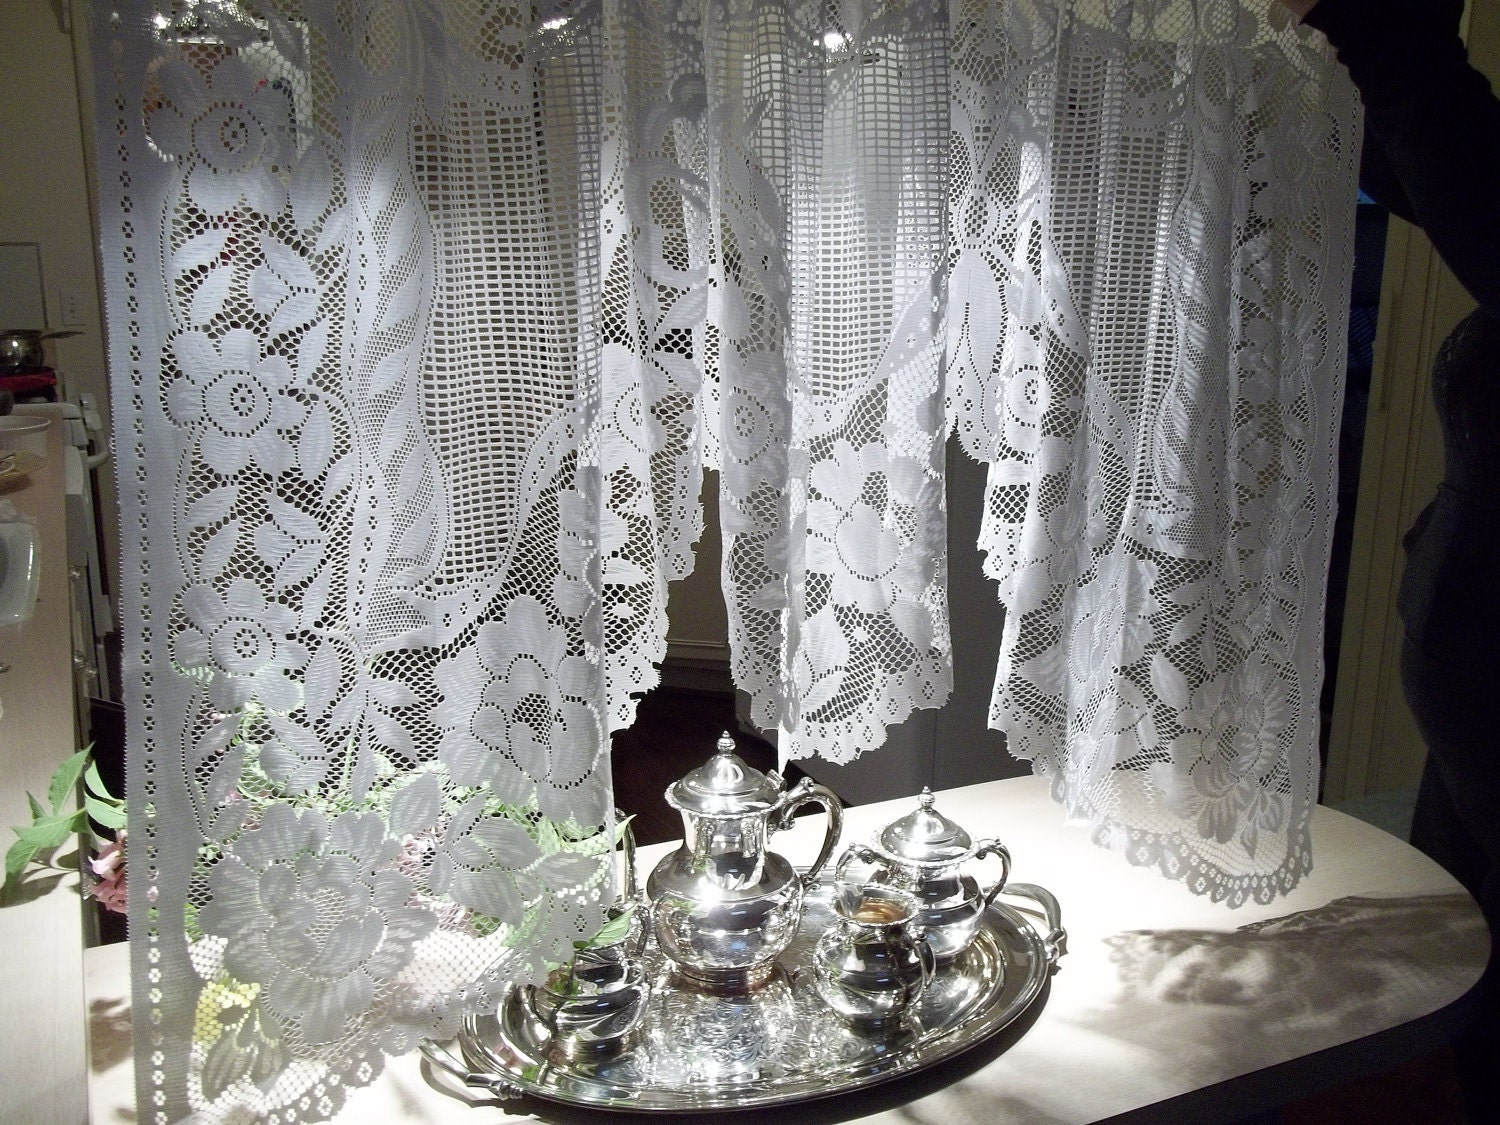 White Lace Curtains Swag Valance silhouetted by ...